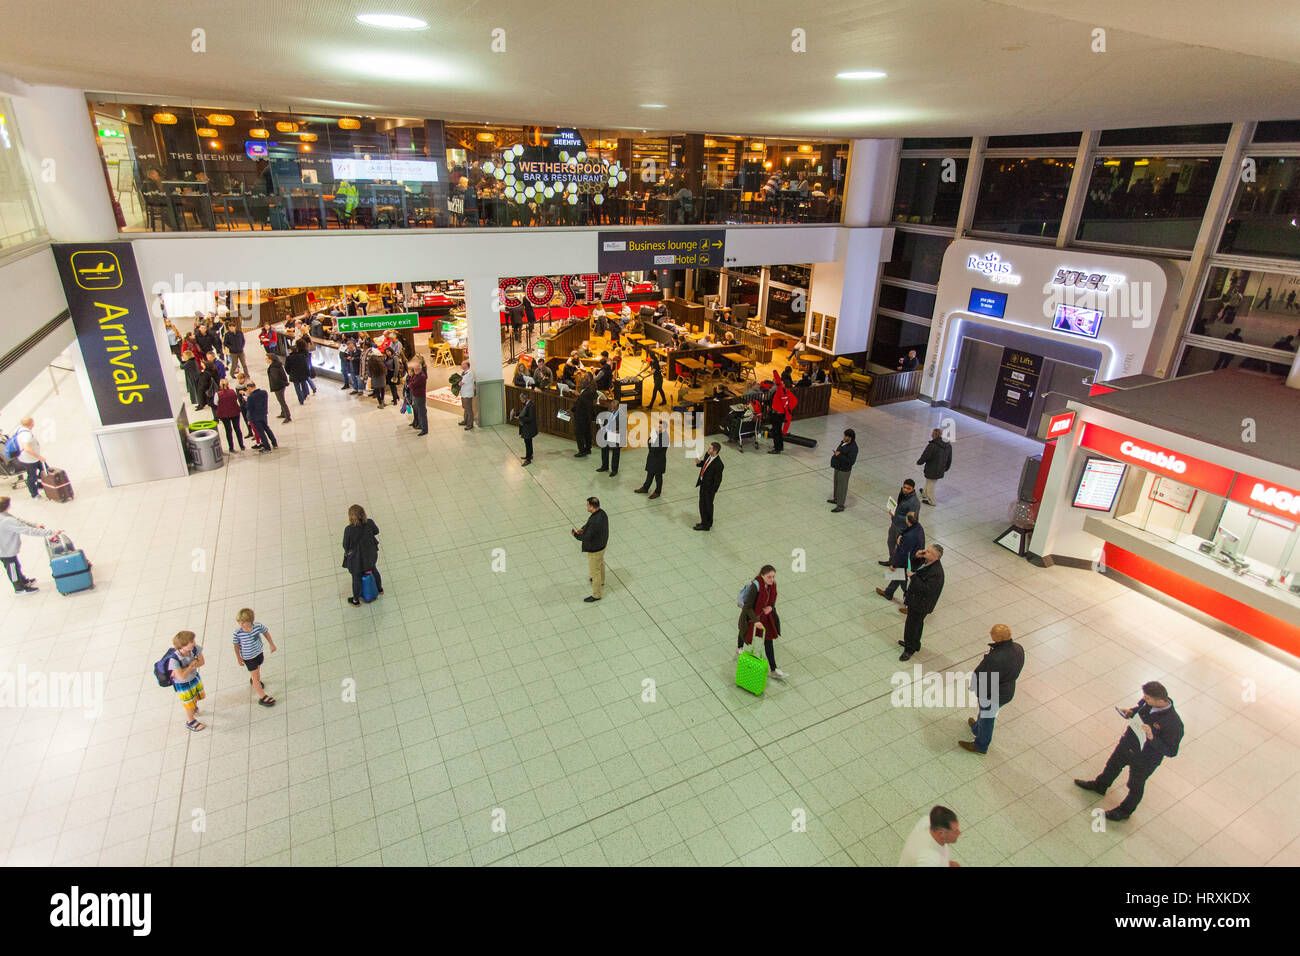 North terminal , Gatwick Airport, England, United Kingdom. - Stock Image